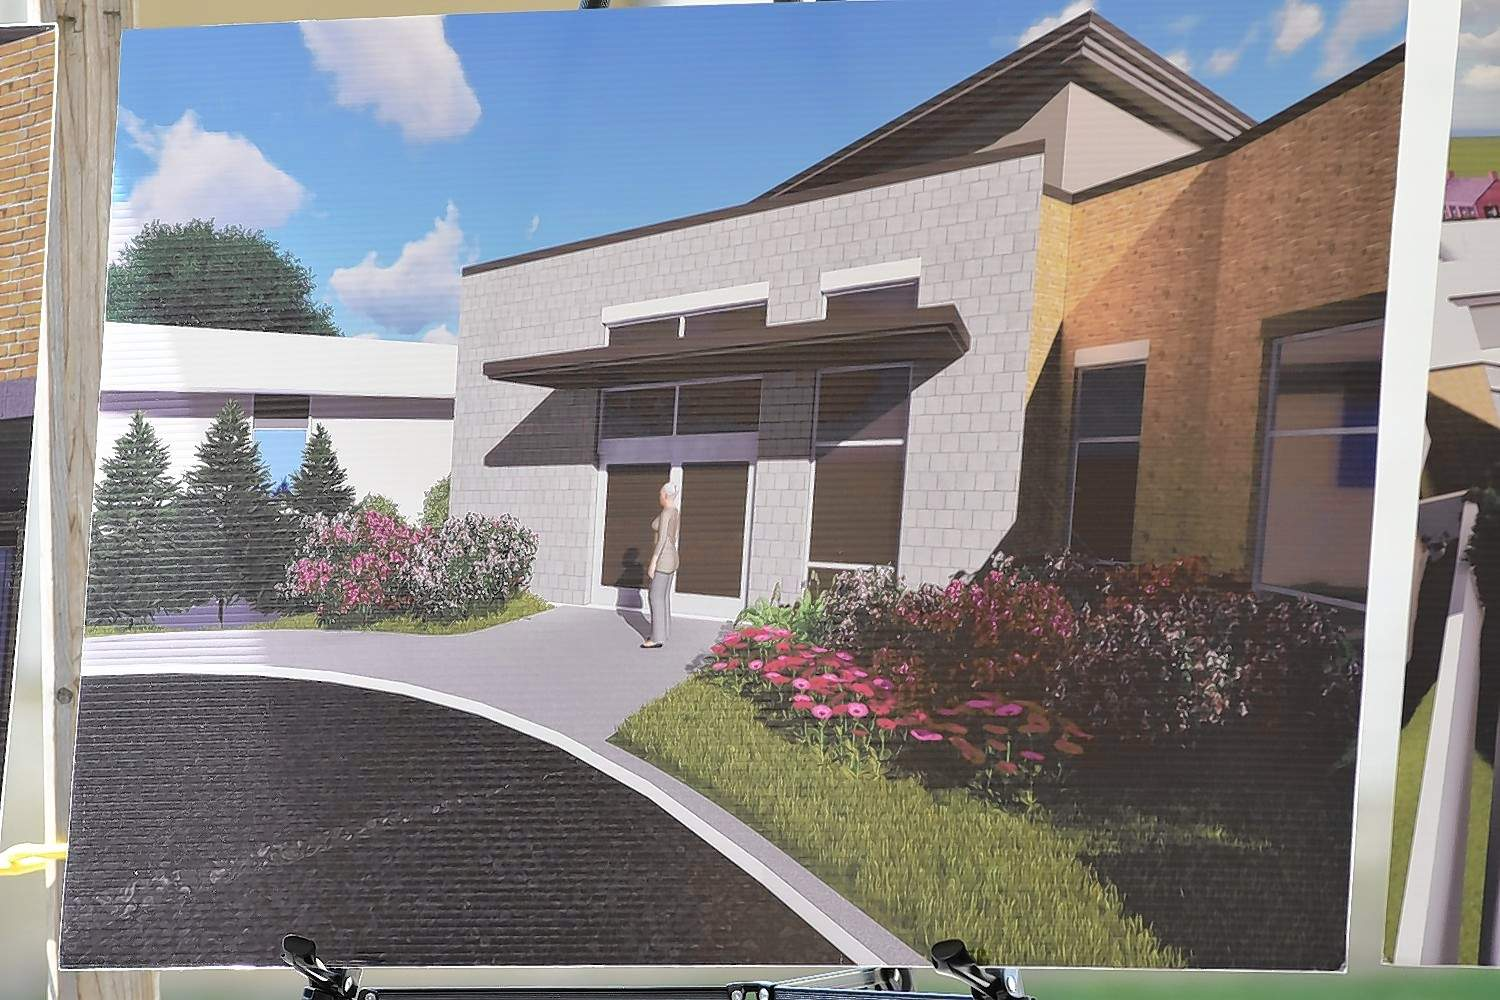 An artist's rendering of the new clinic entry.